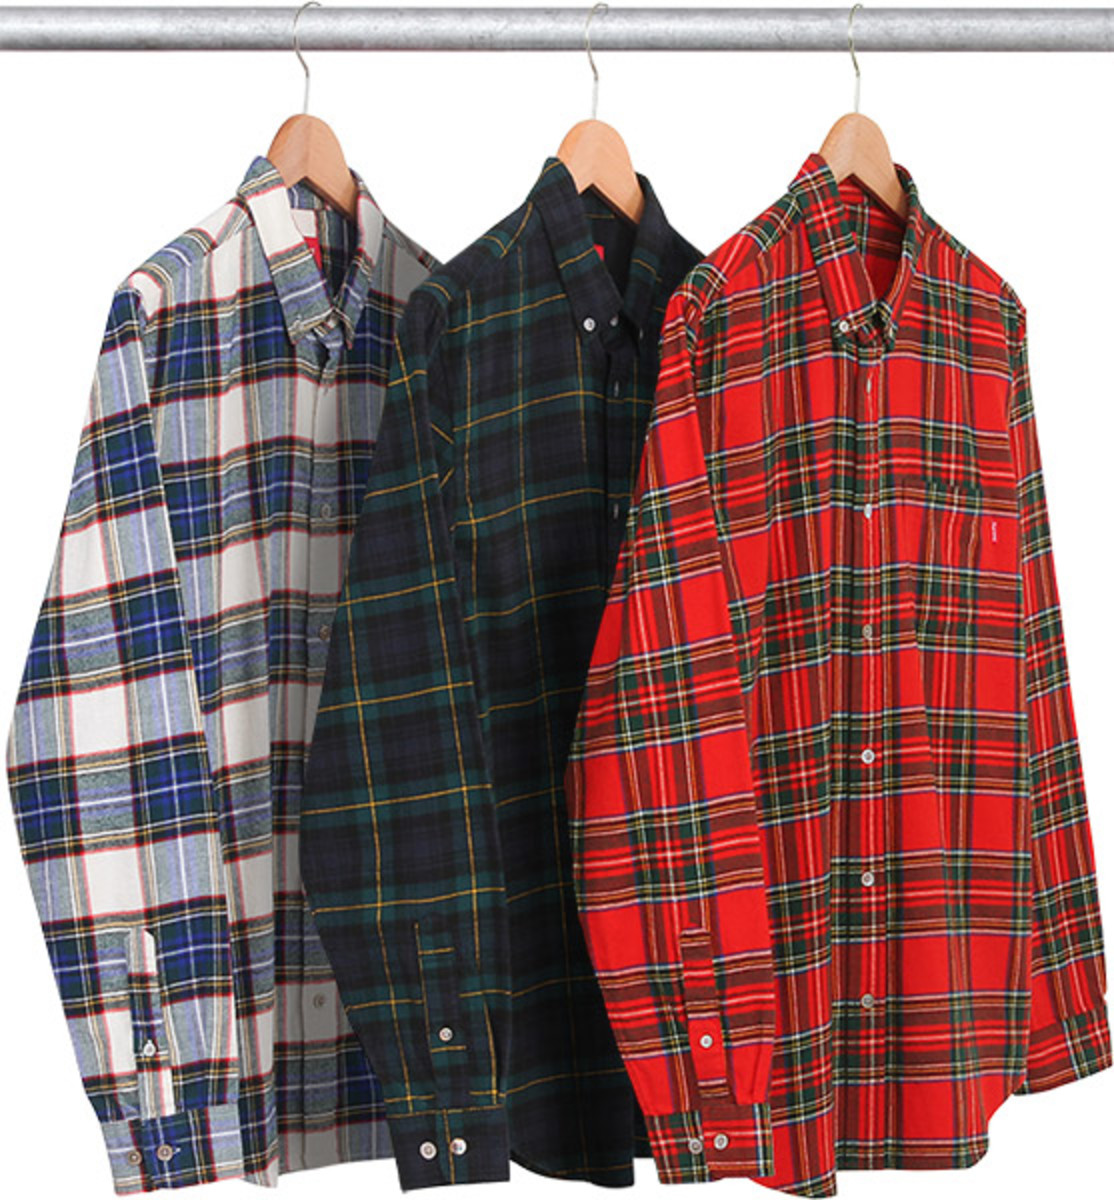 supreme-fall-winter-2012-apparel-03